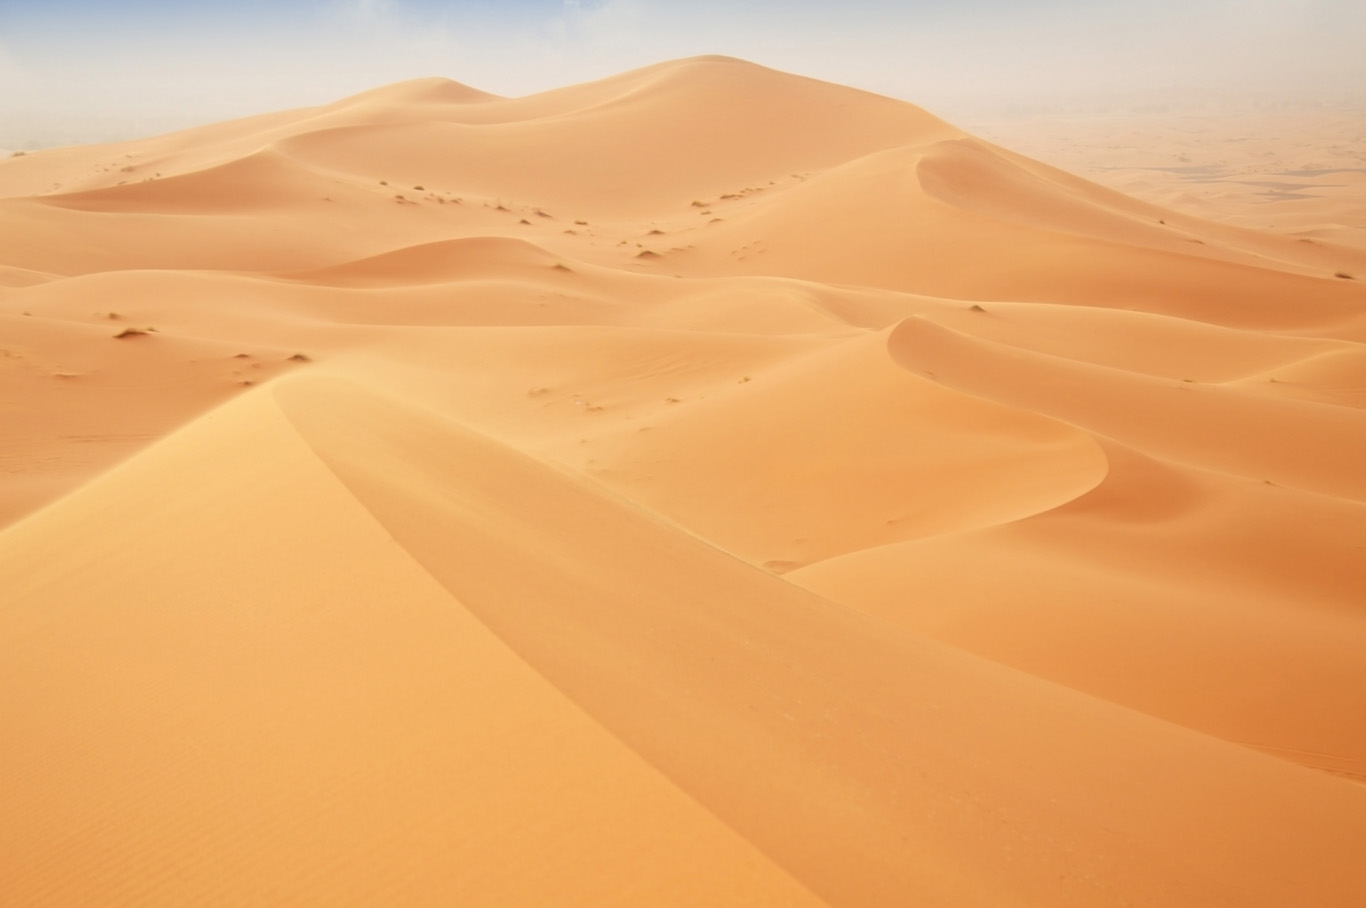 Golden dunes 'smoothed' by the wind